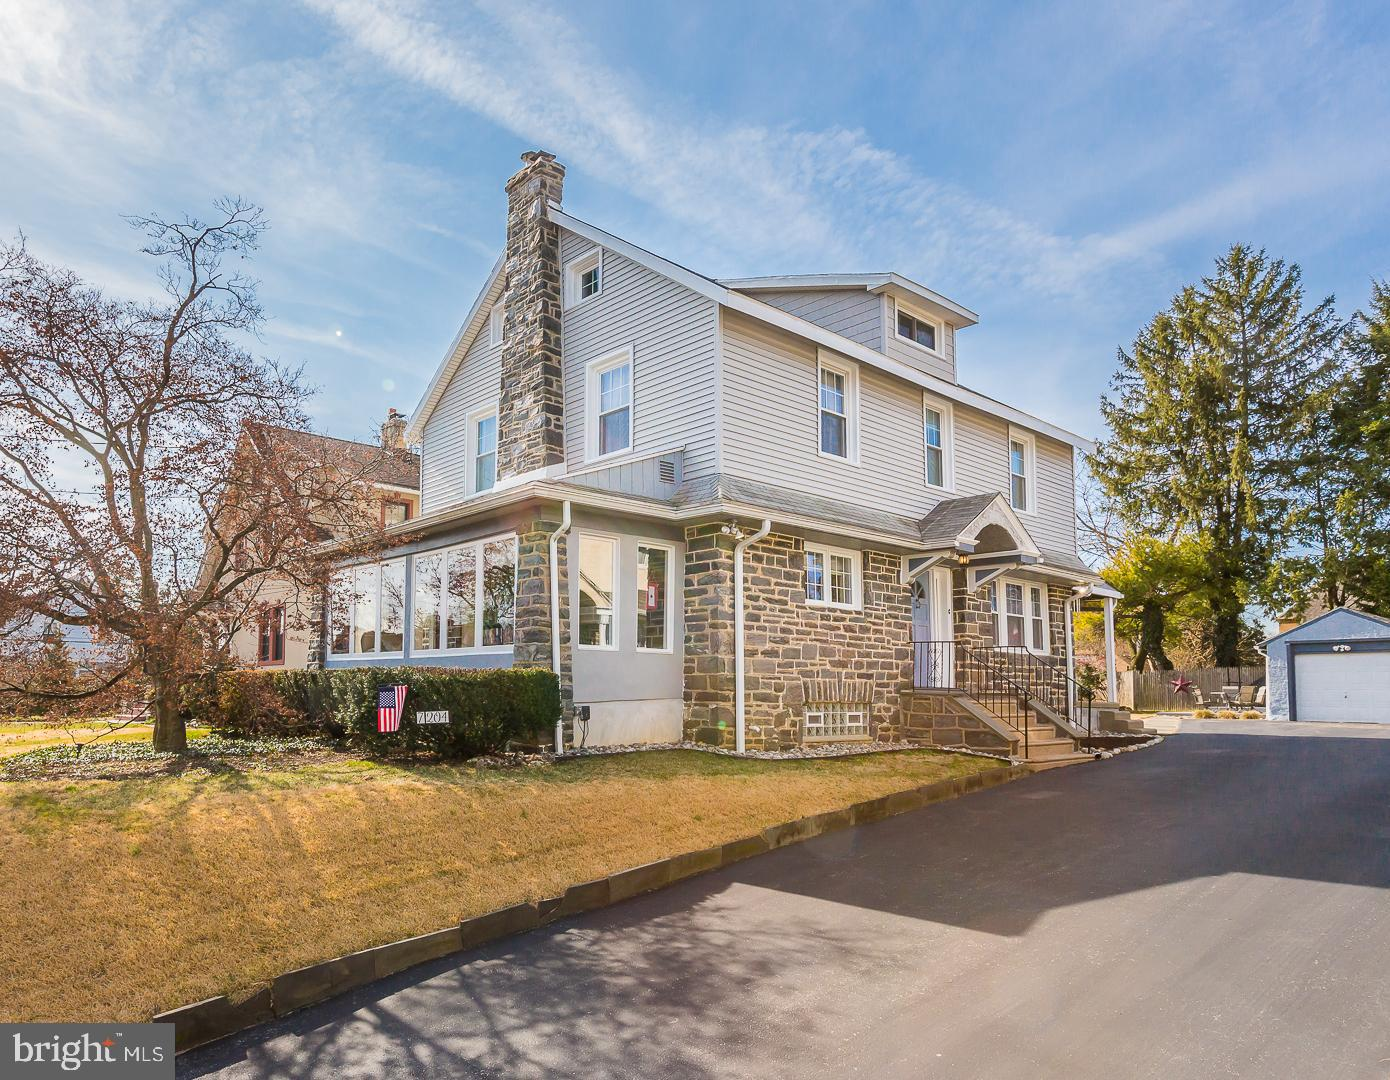 7204 SELLERS AVENUE, UPPER DARBY, PA 19082